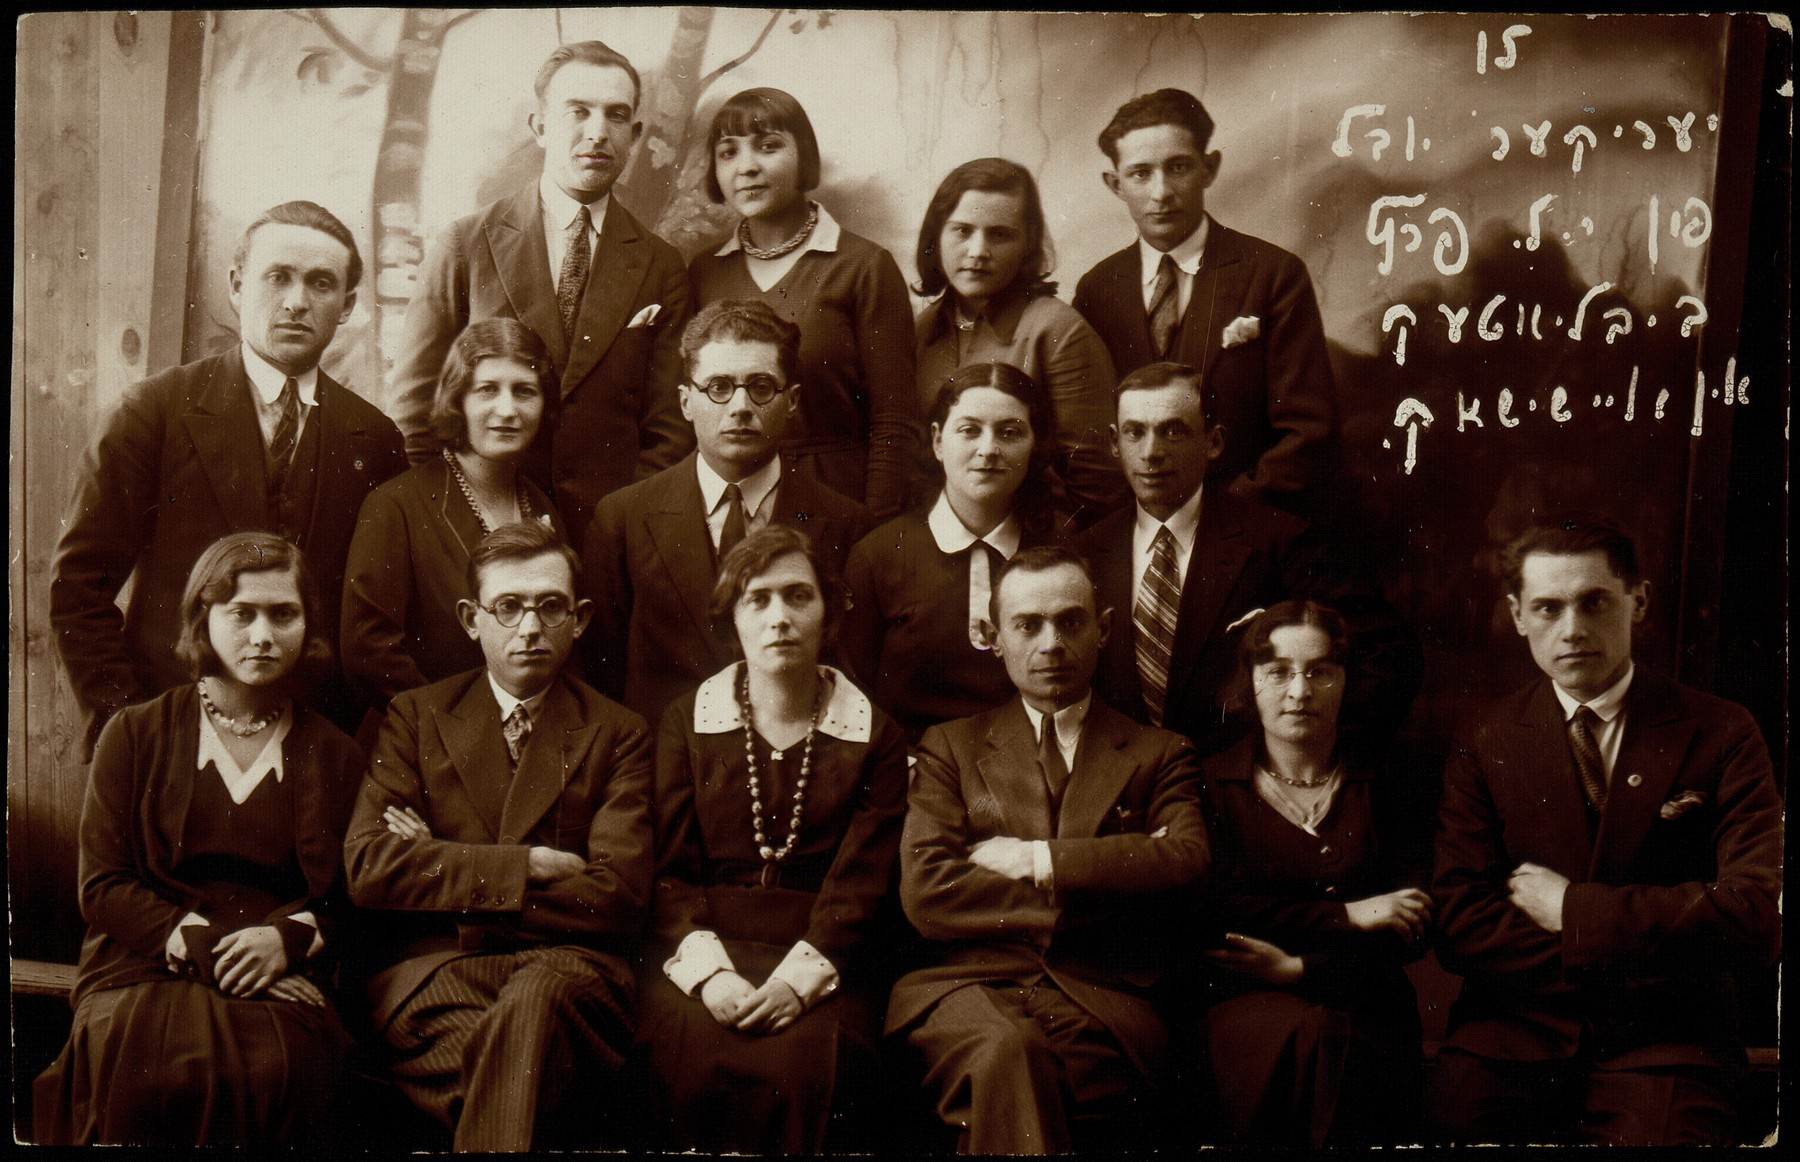 Commemoration of the 15th anniversary of the Y. L. Peretz library.    (first row, left) Batia Bastunski and Mordekhai (Motl) Replianski; Velvke Katz (fourth from left); (middle row, left) Velvke Kaganowicz;  Eli Politacki (third from left); Malka Matikanski (top row, second from left).   Batia immigrated to America; Malka went to Palestine.  Most of the other people pictured were murdered by the Germans during the September 1941 killing action in Eisiskes.